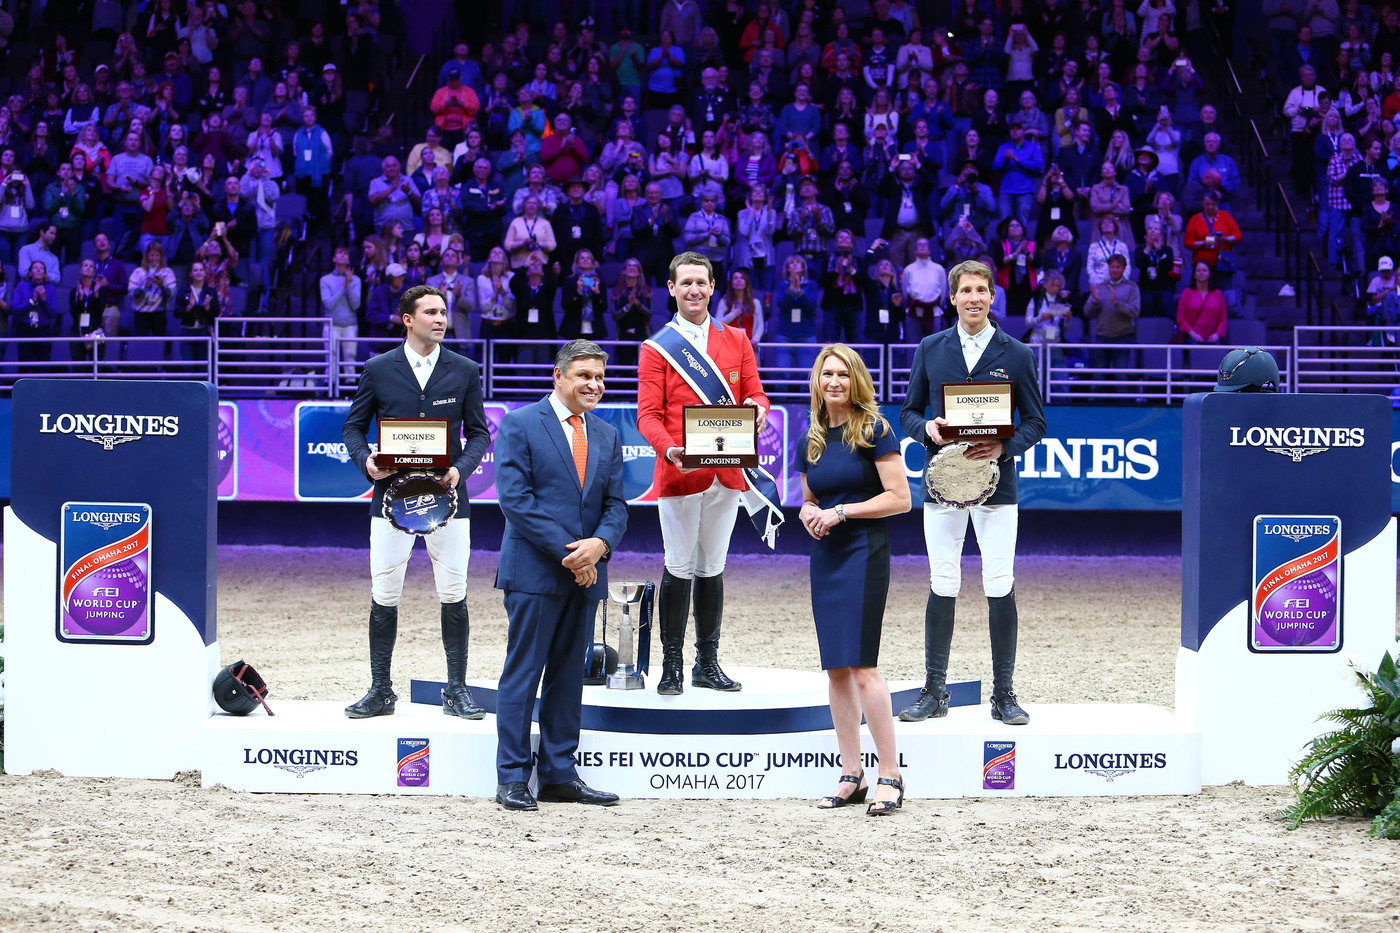 Longines Show Jumping Event: McLain Ward and HH Azur are the indisputable Champions of the Longines FEI World Cup™ Jumping 2017 5